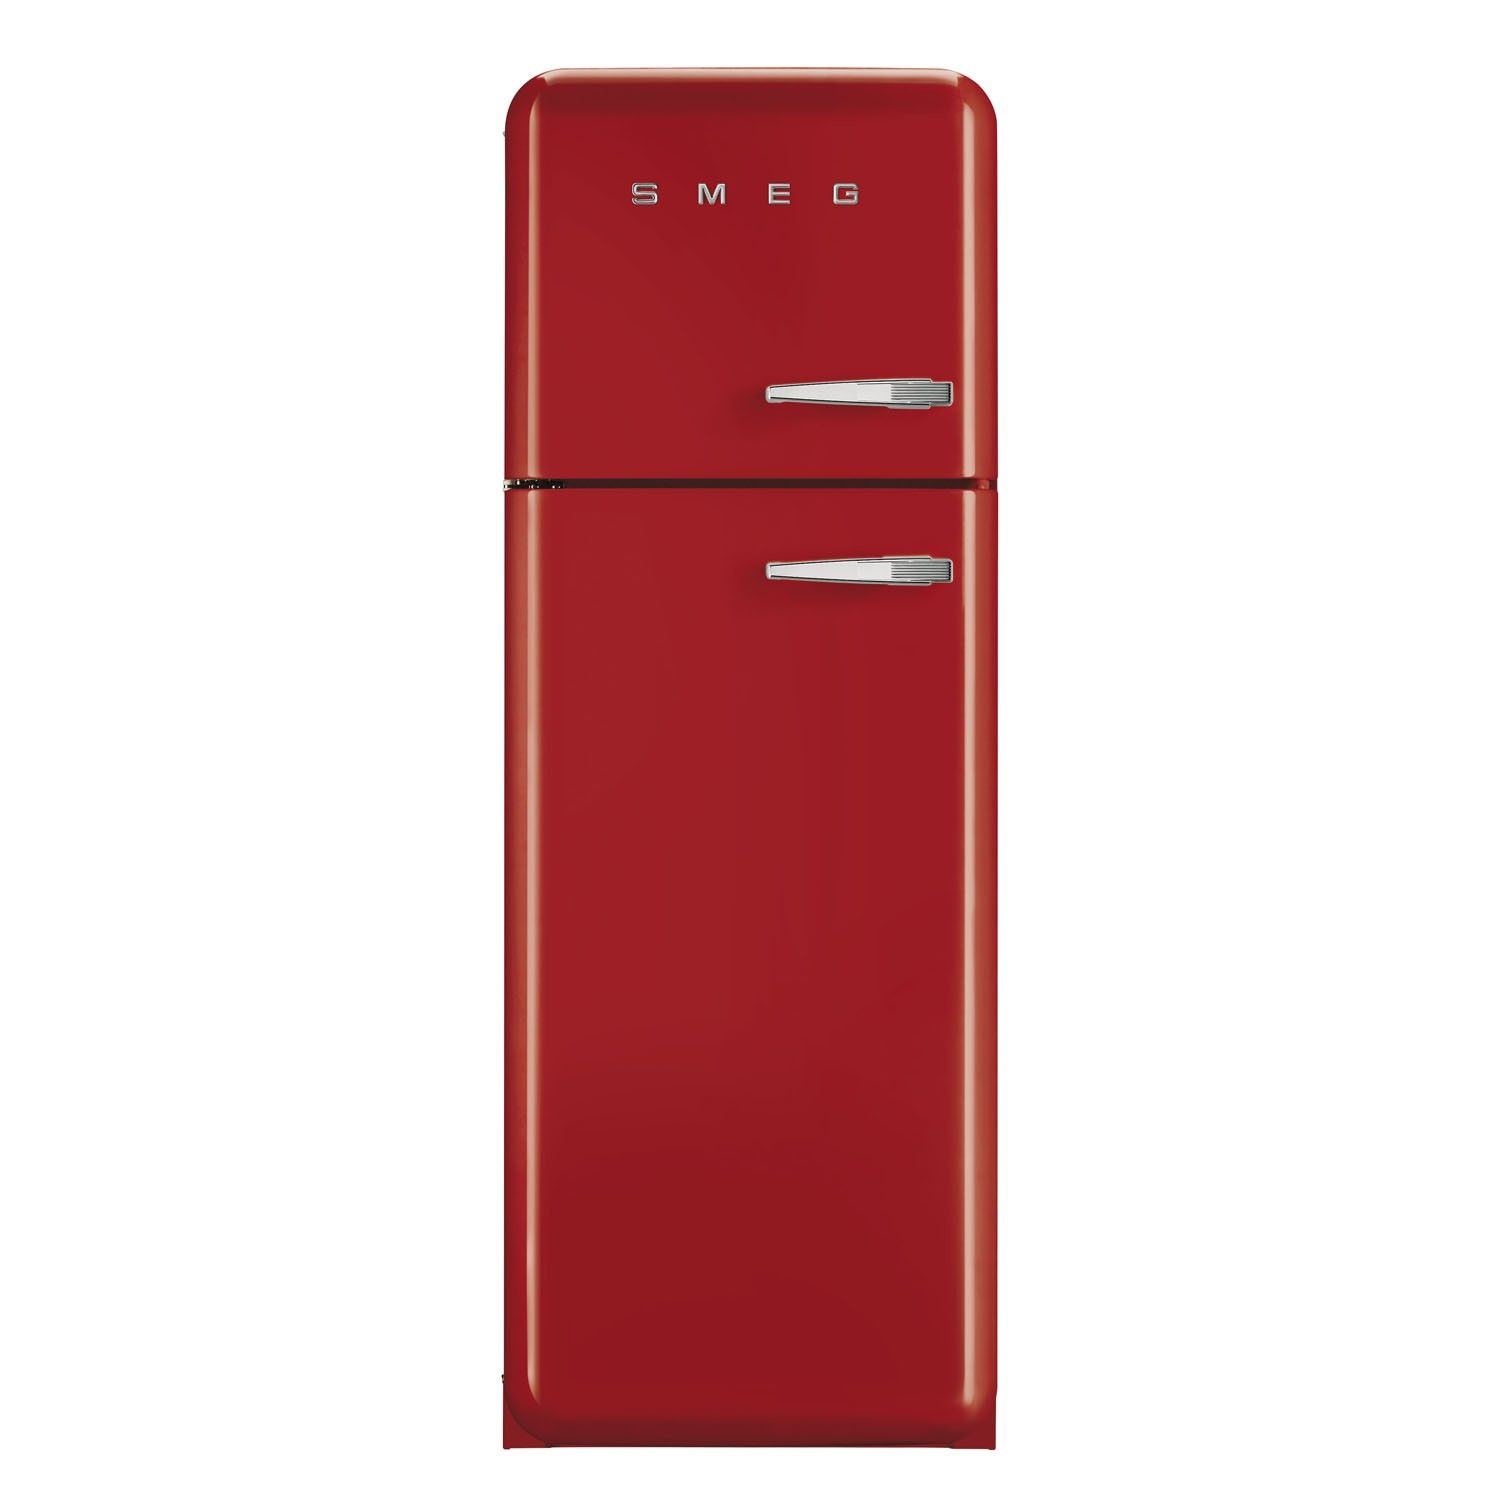 Smeg FAB30LFR 50\'s Retro Style Red Fridge Freezer | Retro style ...